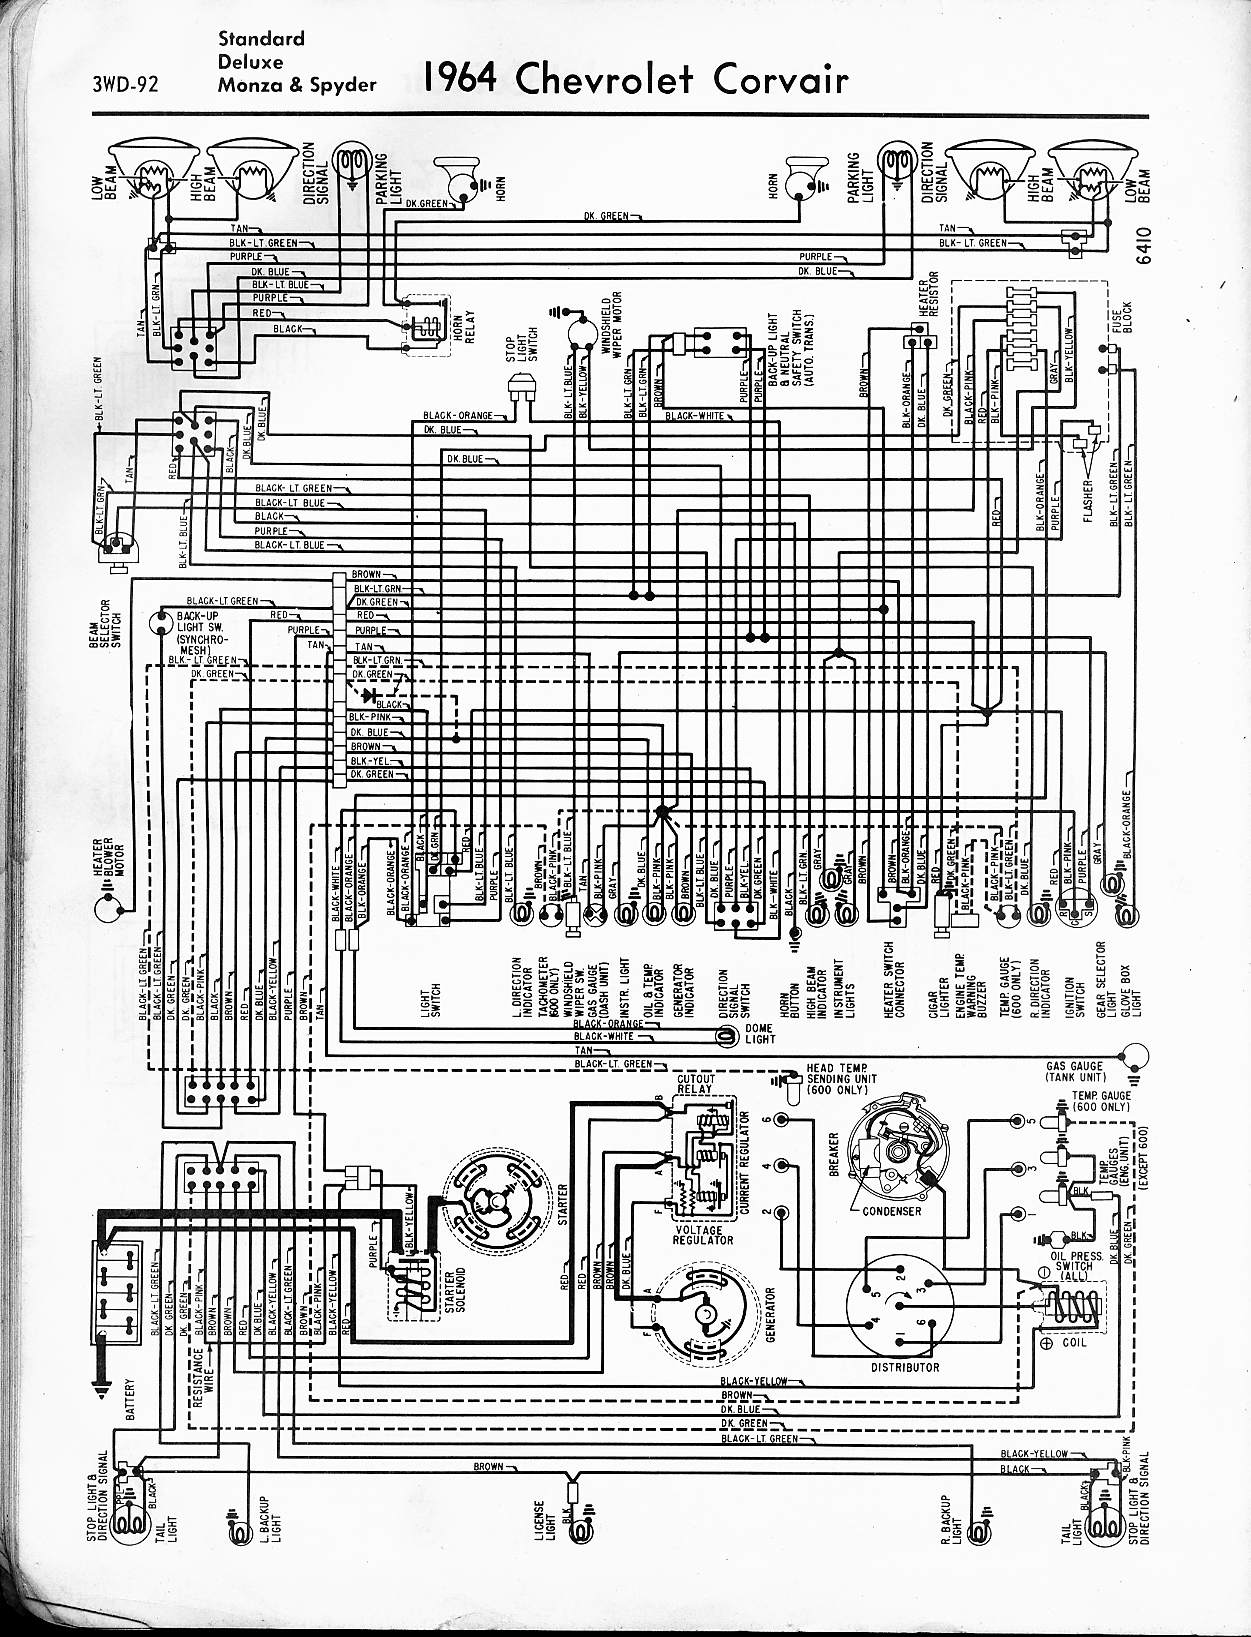 Chevy Malibu Turn Signal Wiring Diagram Free Picture Reveolution 1951 Ford Truck 1964 Nova Experts Of U2022 Rh Evilcloud Co Uk Grote